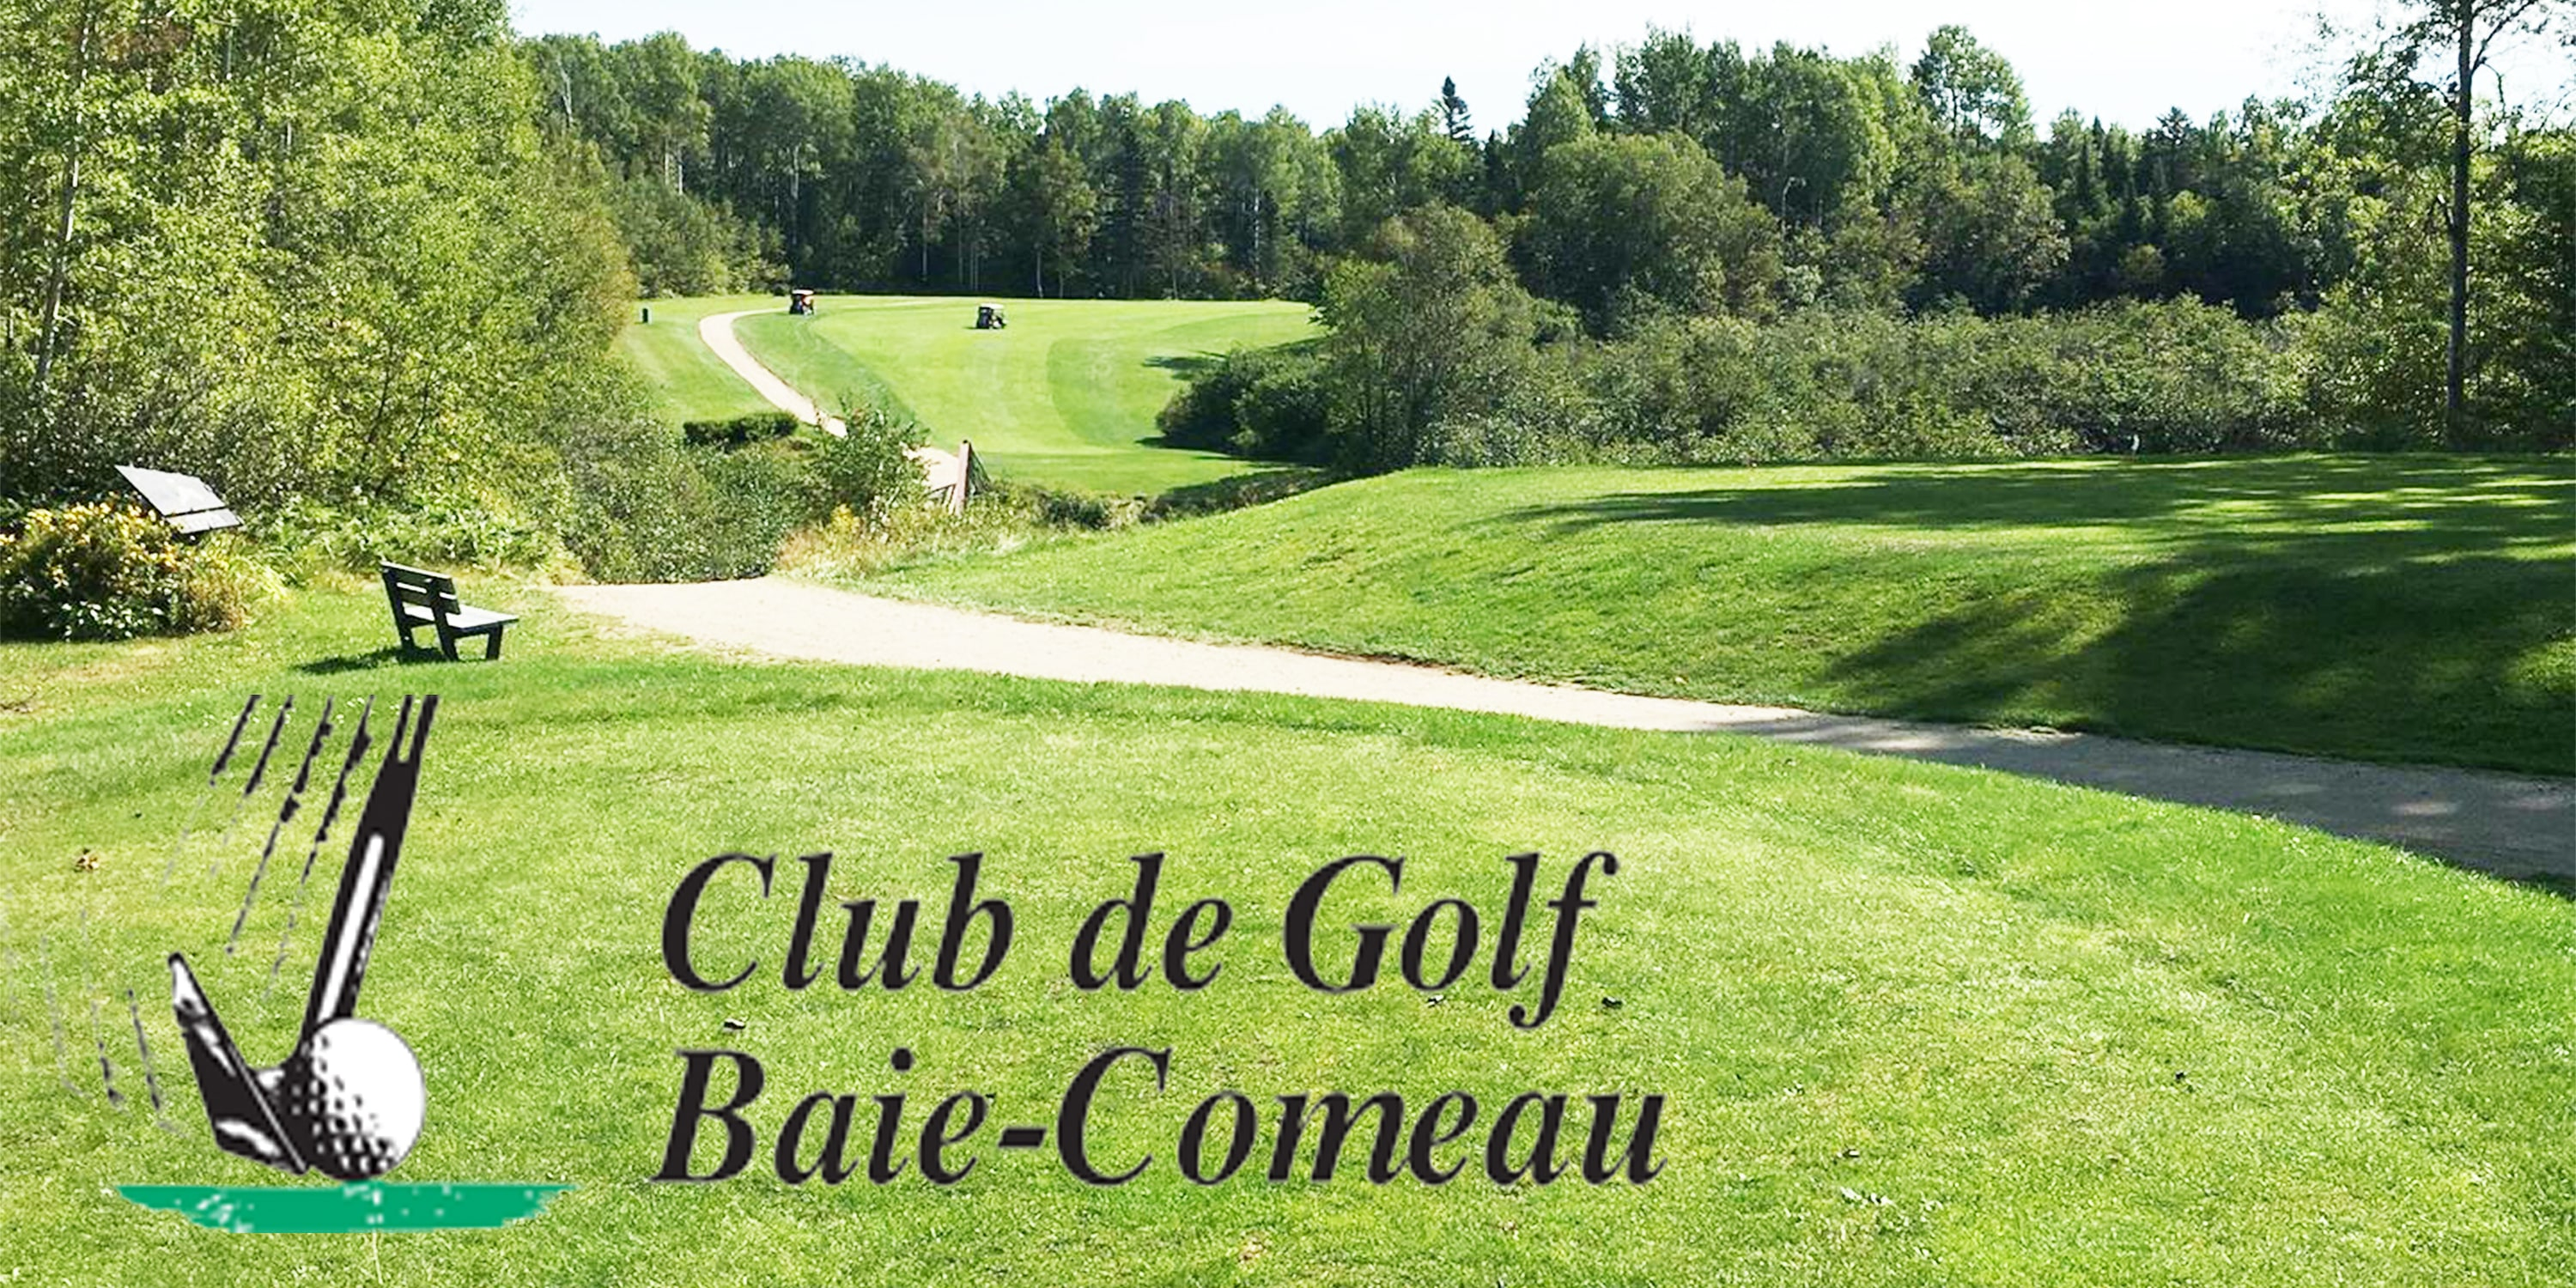 Club de Golf Baie-Comeau - A Challenge For All Golfers